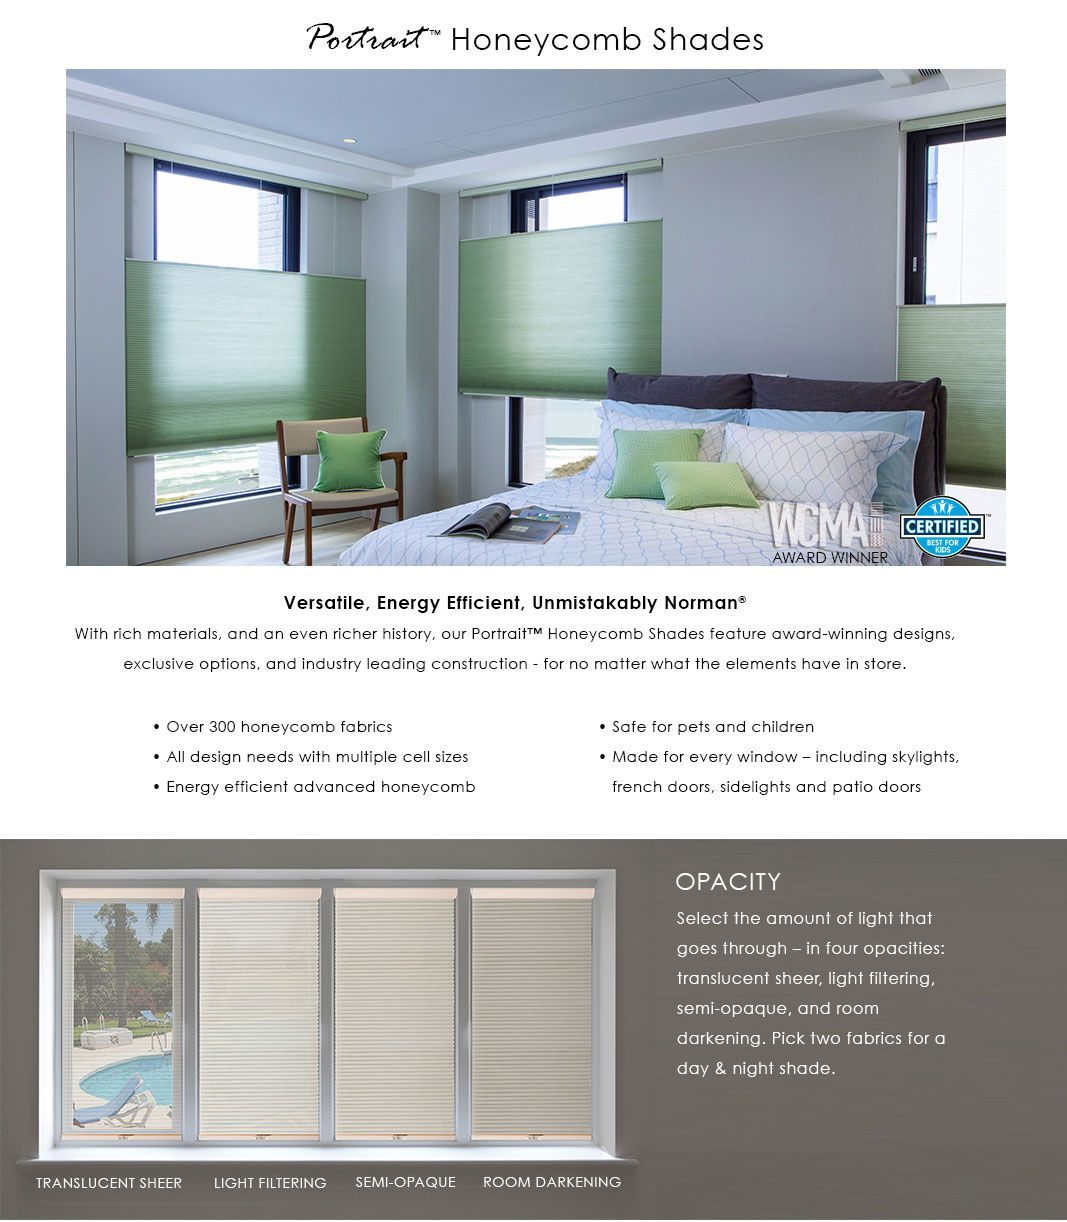 With portrait honeycomb shades you can select the opacity or pick